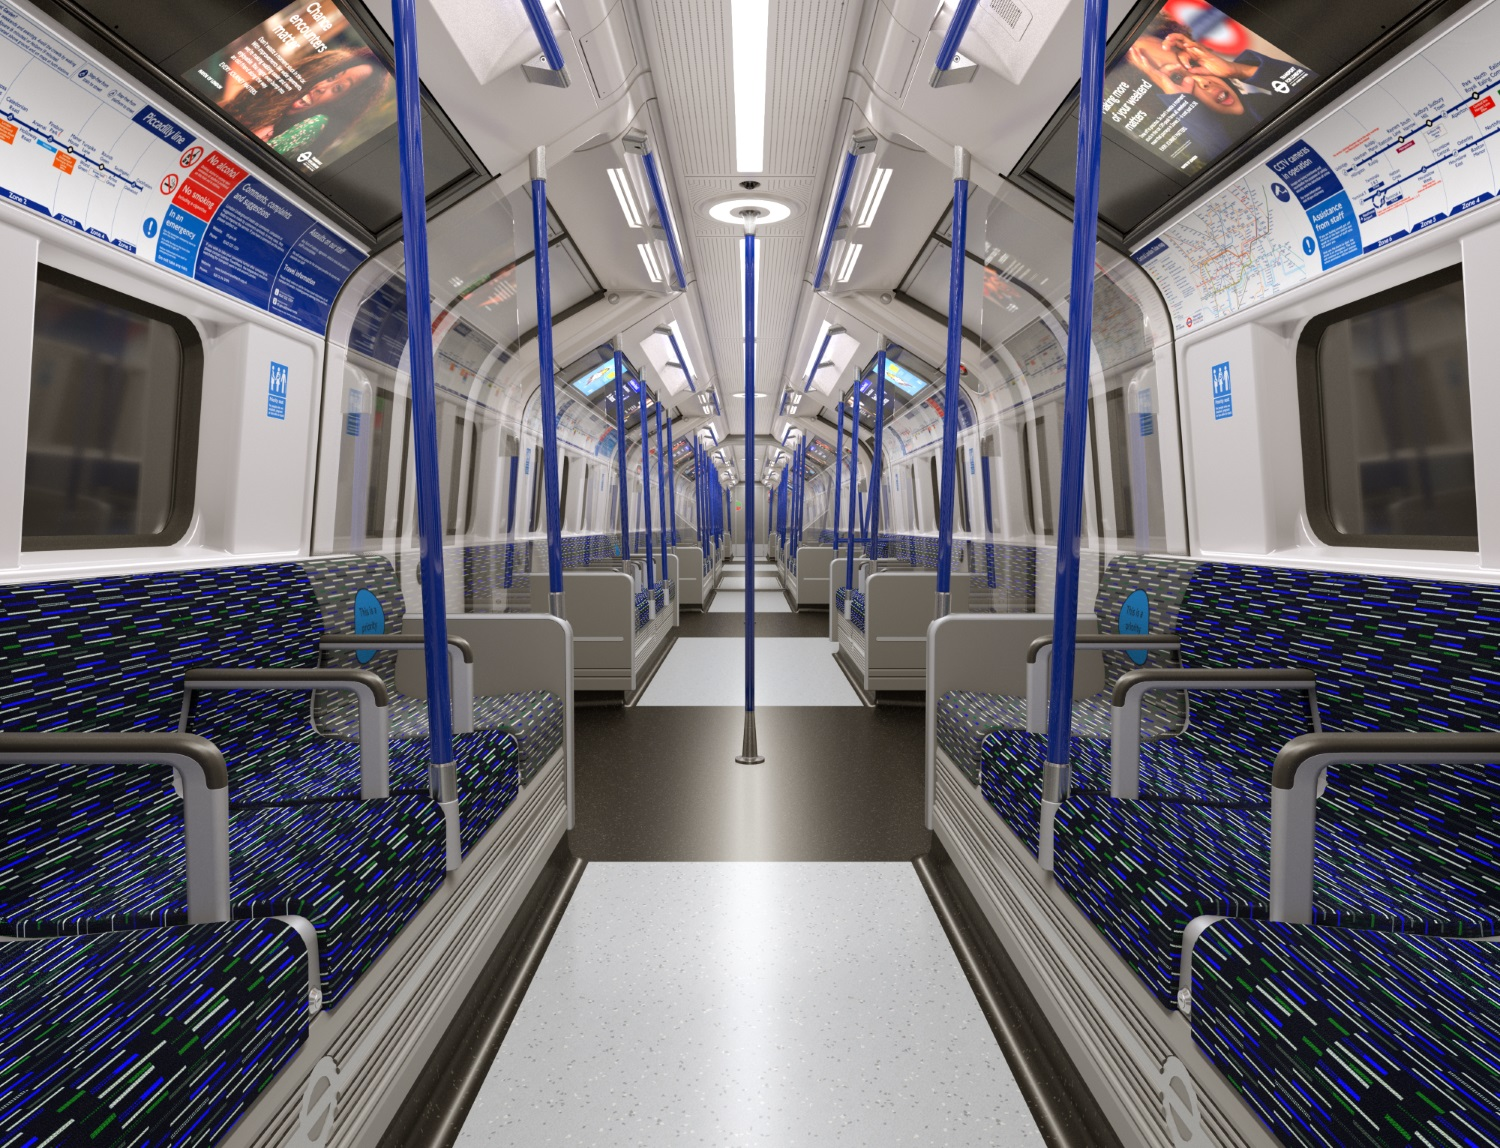 Interior of the new Piccadilly line train